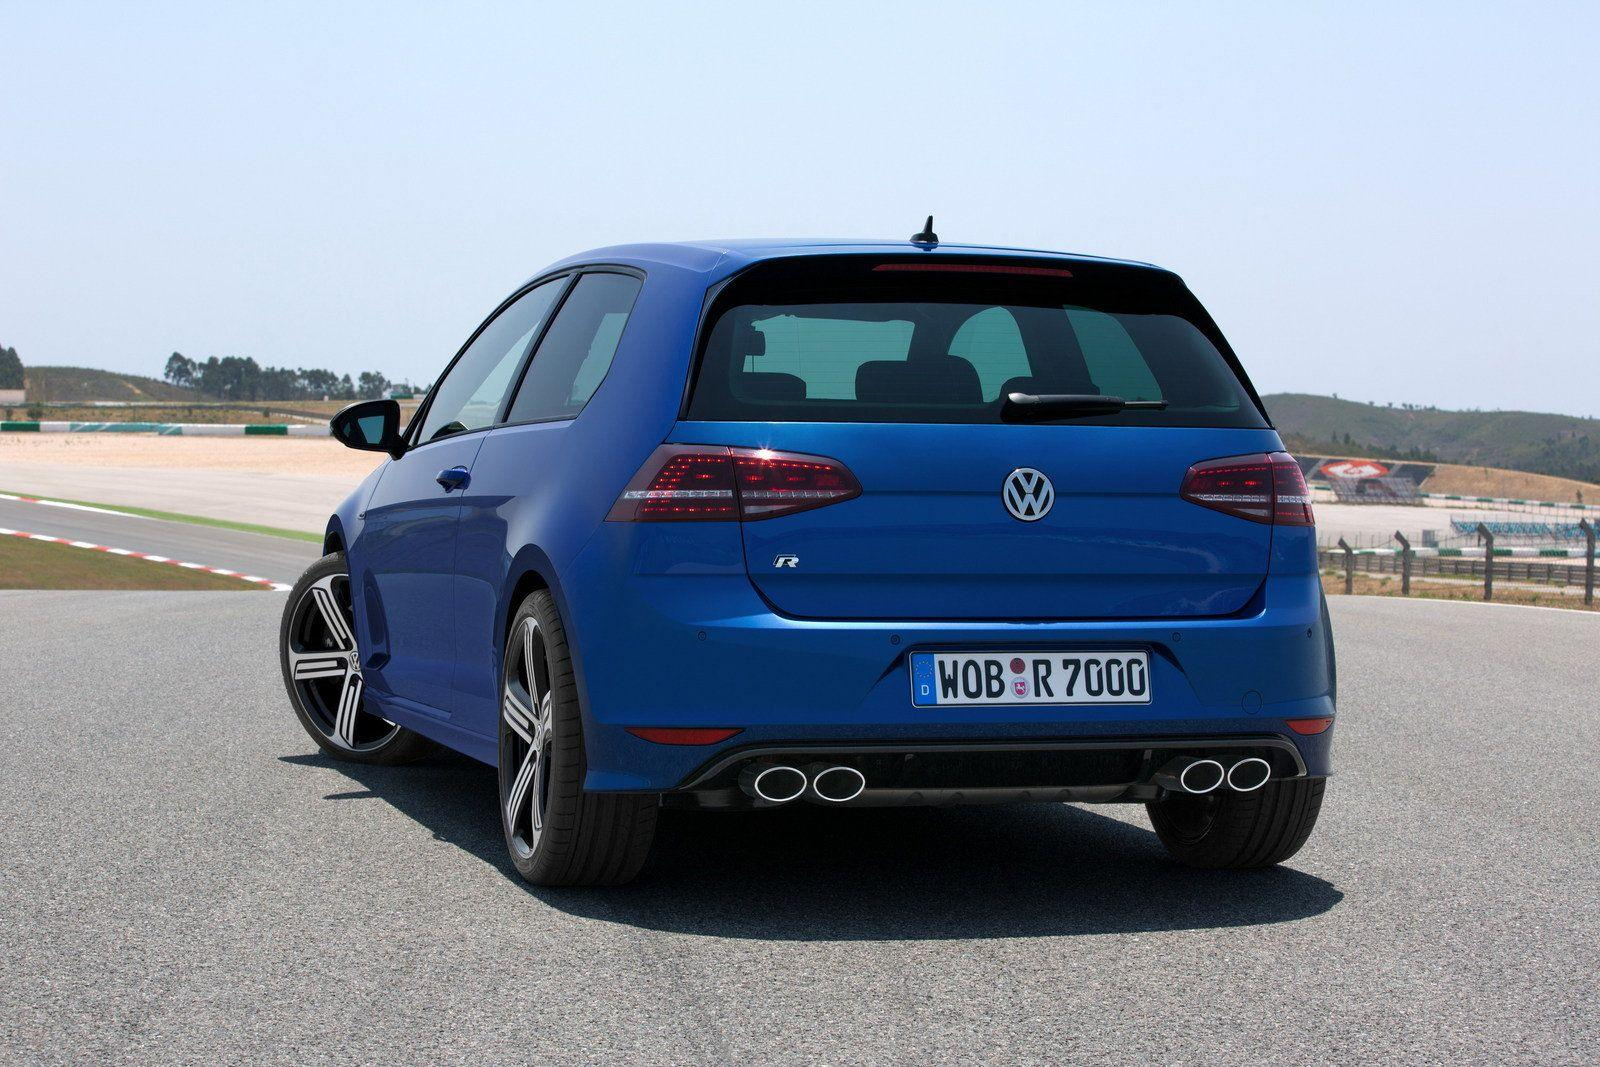 Volkswagen Golf R wallpapers, Vehicles, HQ Volkswagen Golf R ...